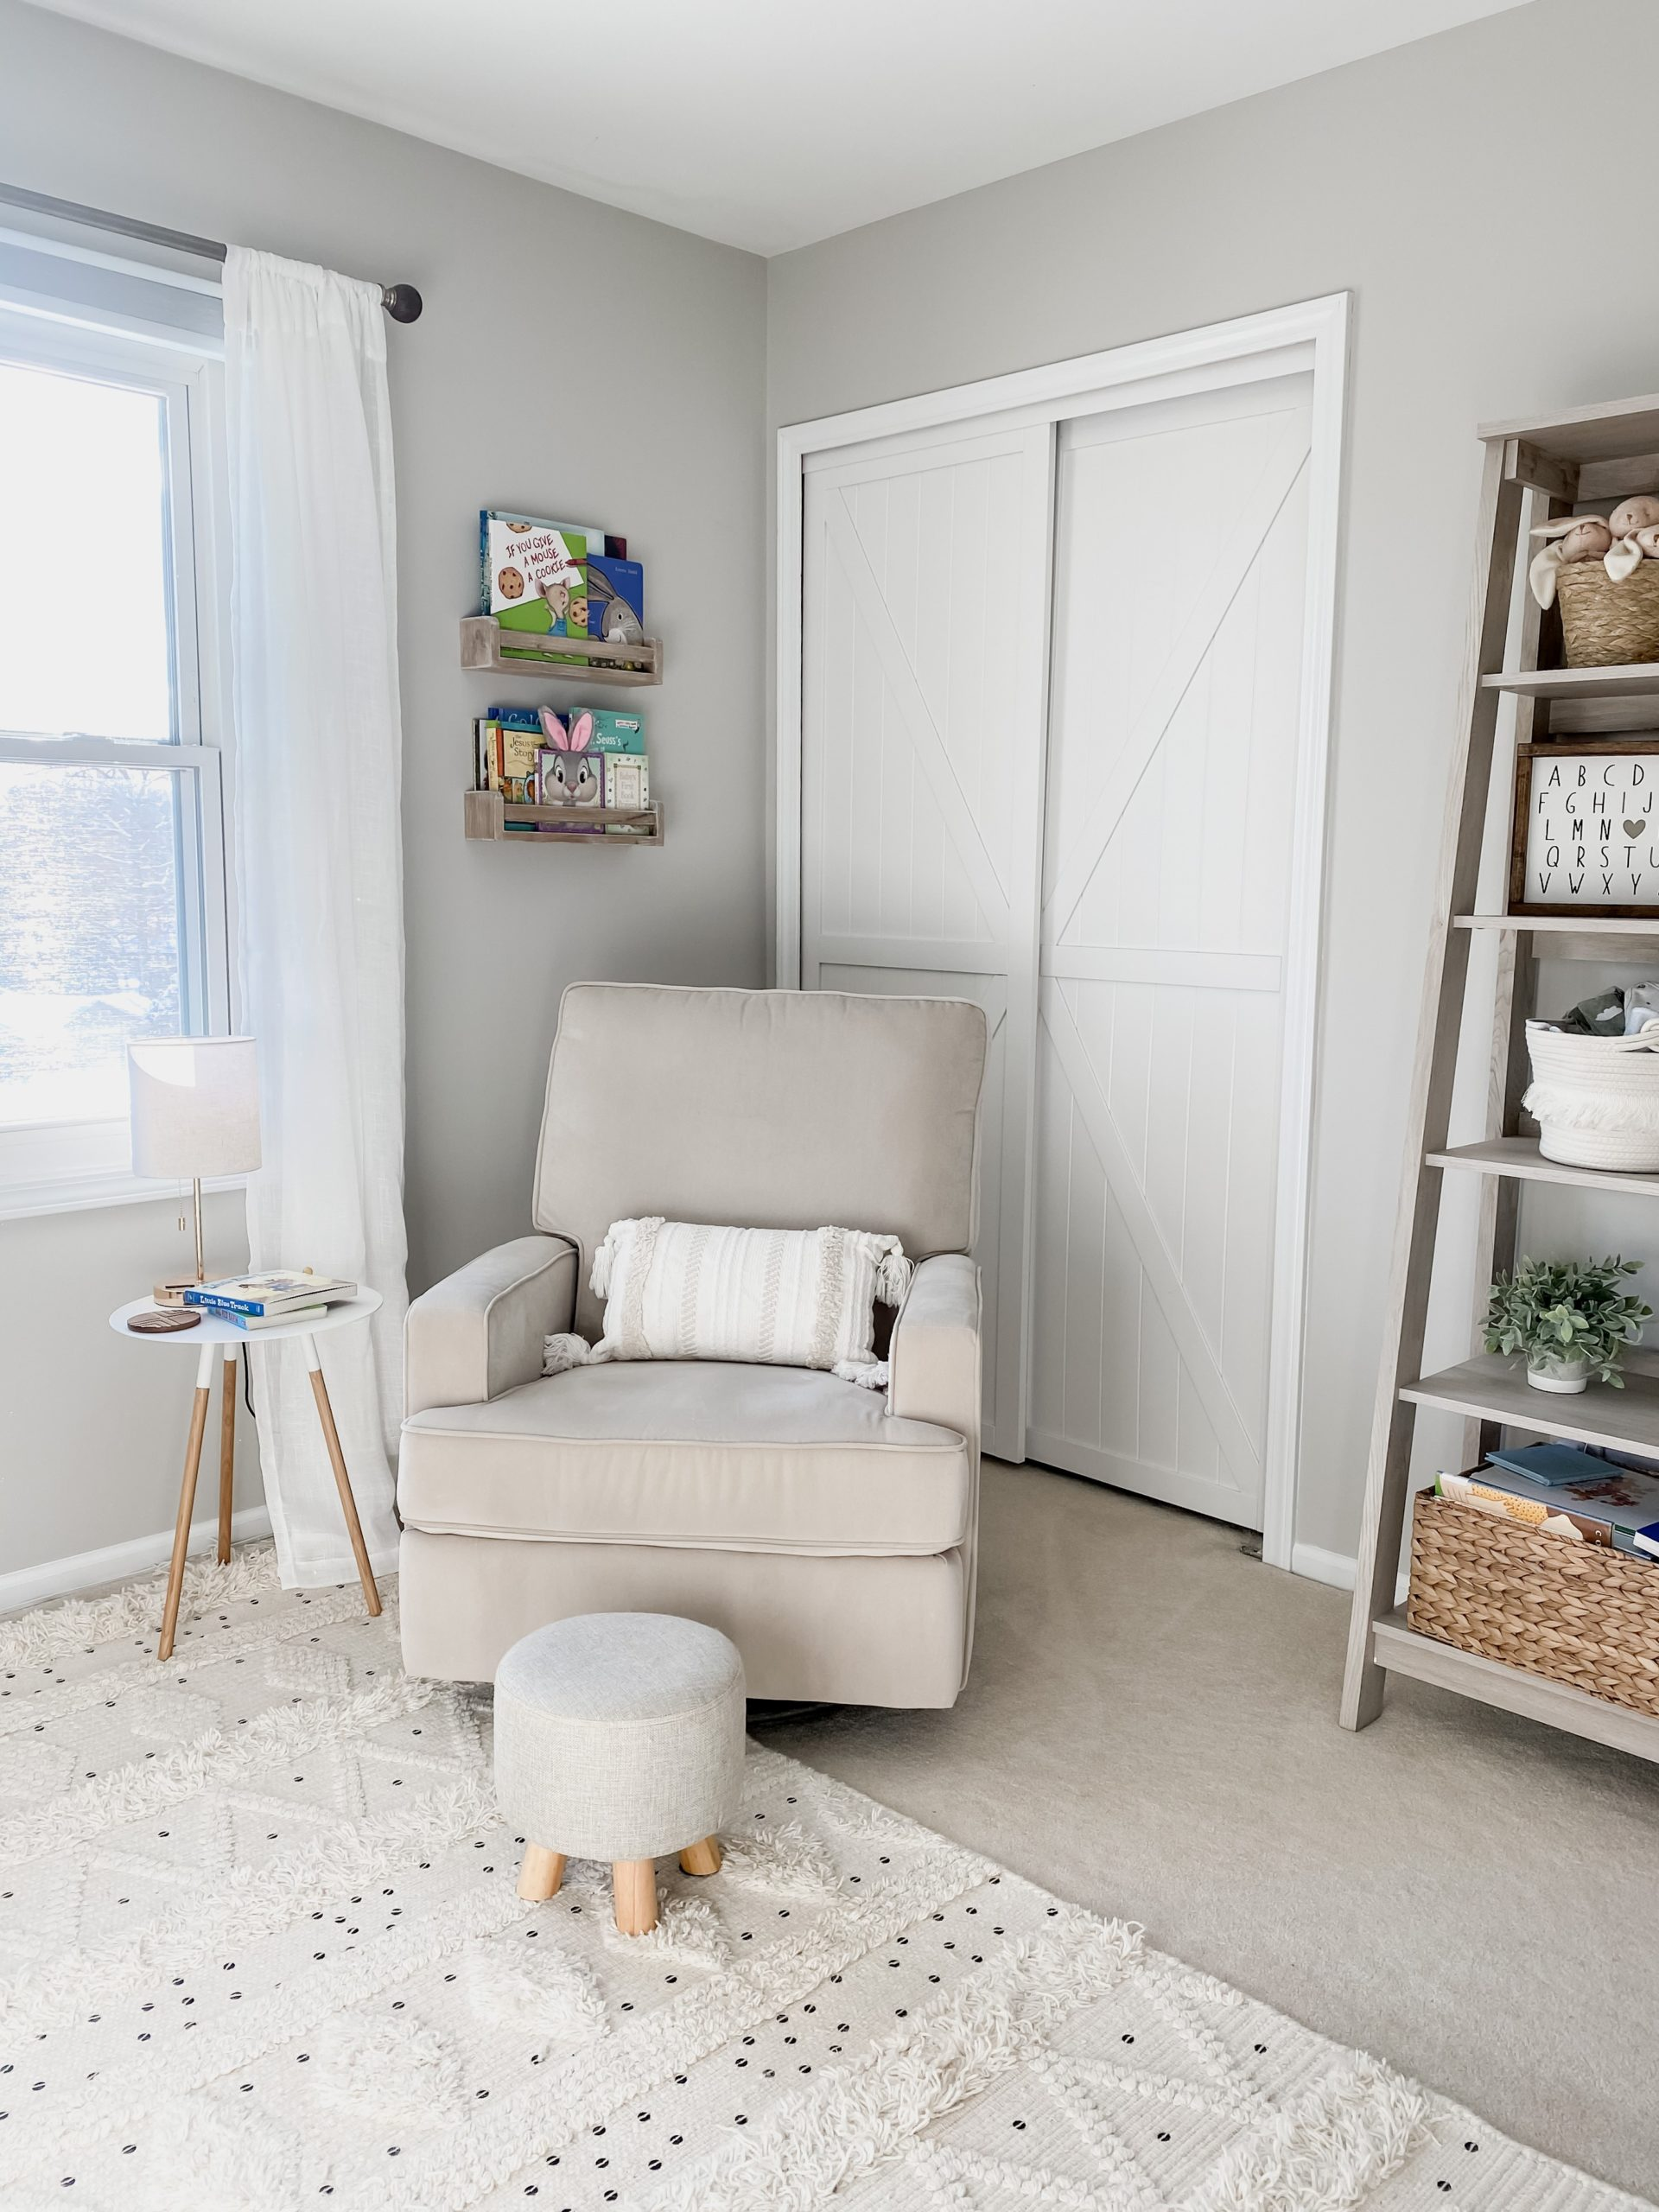 Nursery Corner by Amanda (@comestayawhile on Instagram) Using Our Trident Double K-Design White Bypass Closet Door